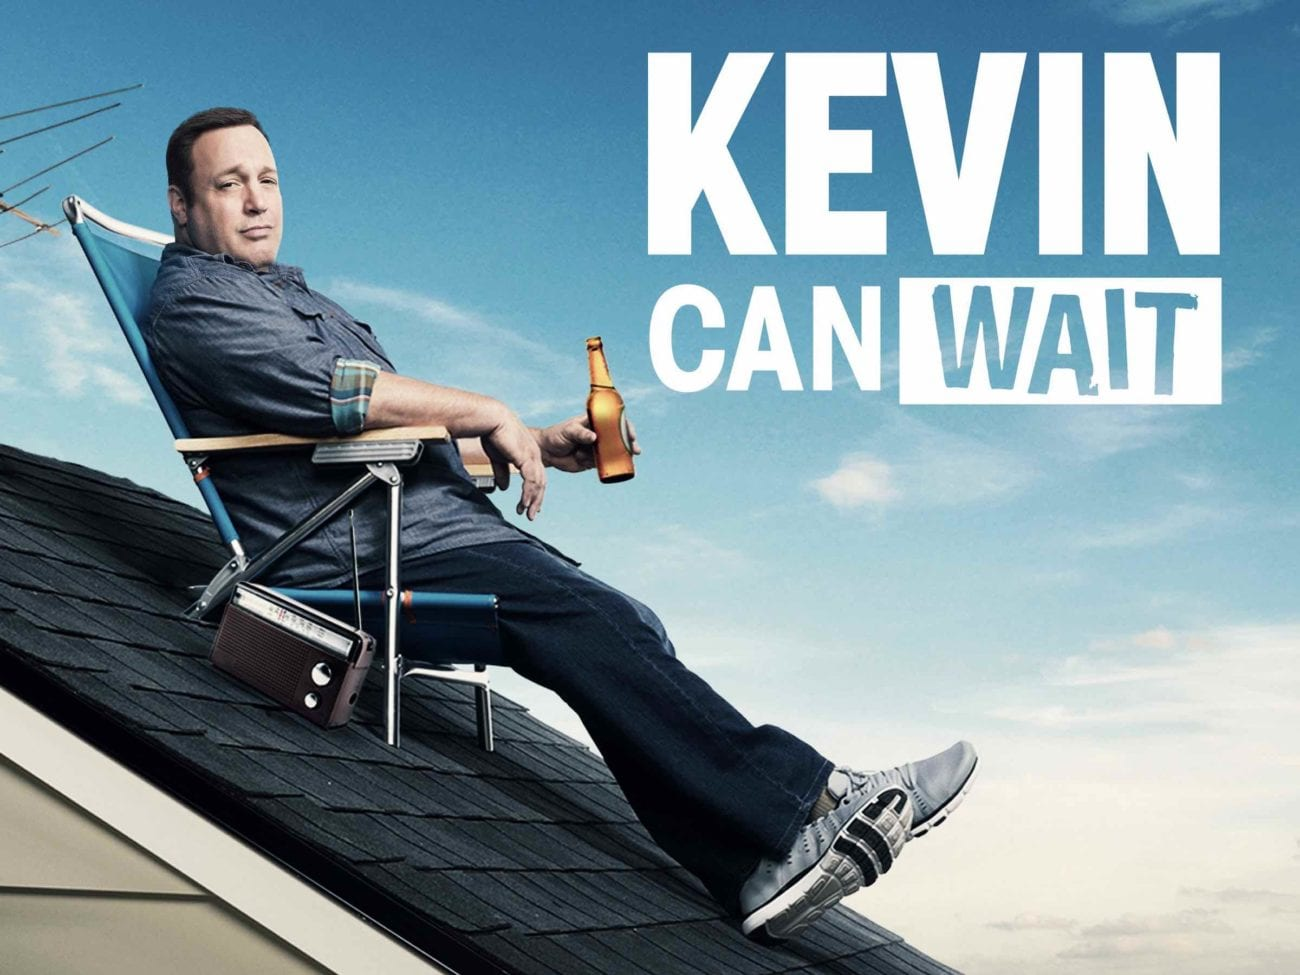 Is 'Kevin Can Wait' the worst TV husband of all time? We decided to compile a list of the worst TV husbands of all time.